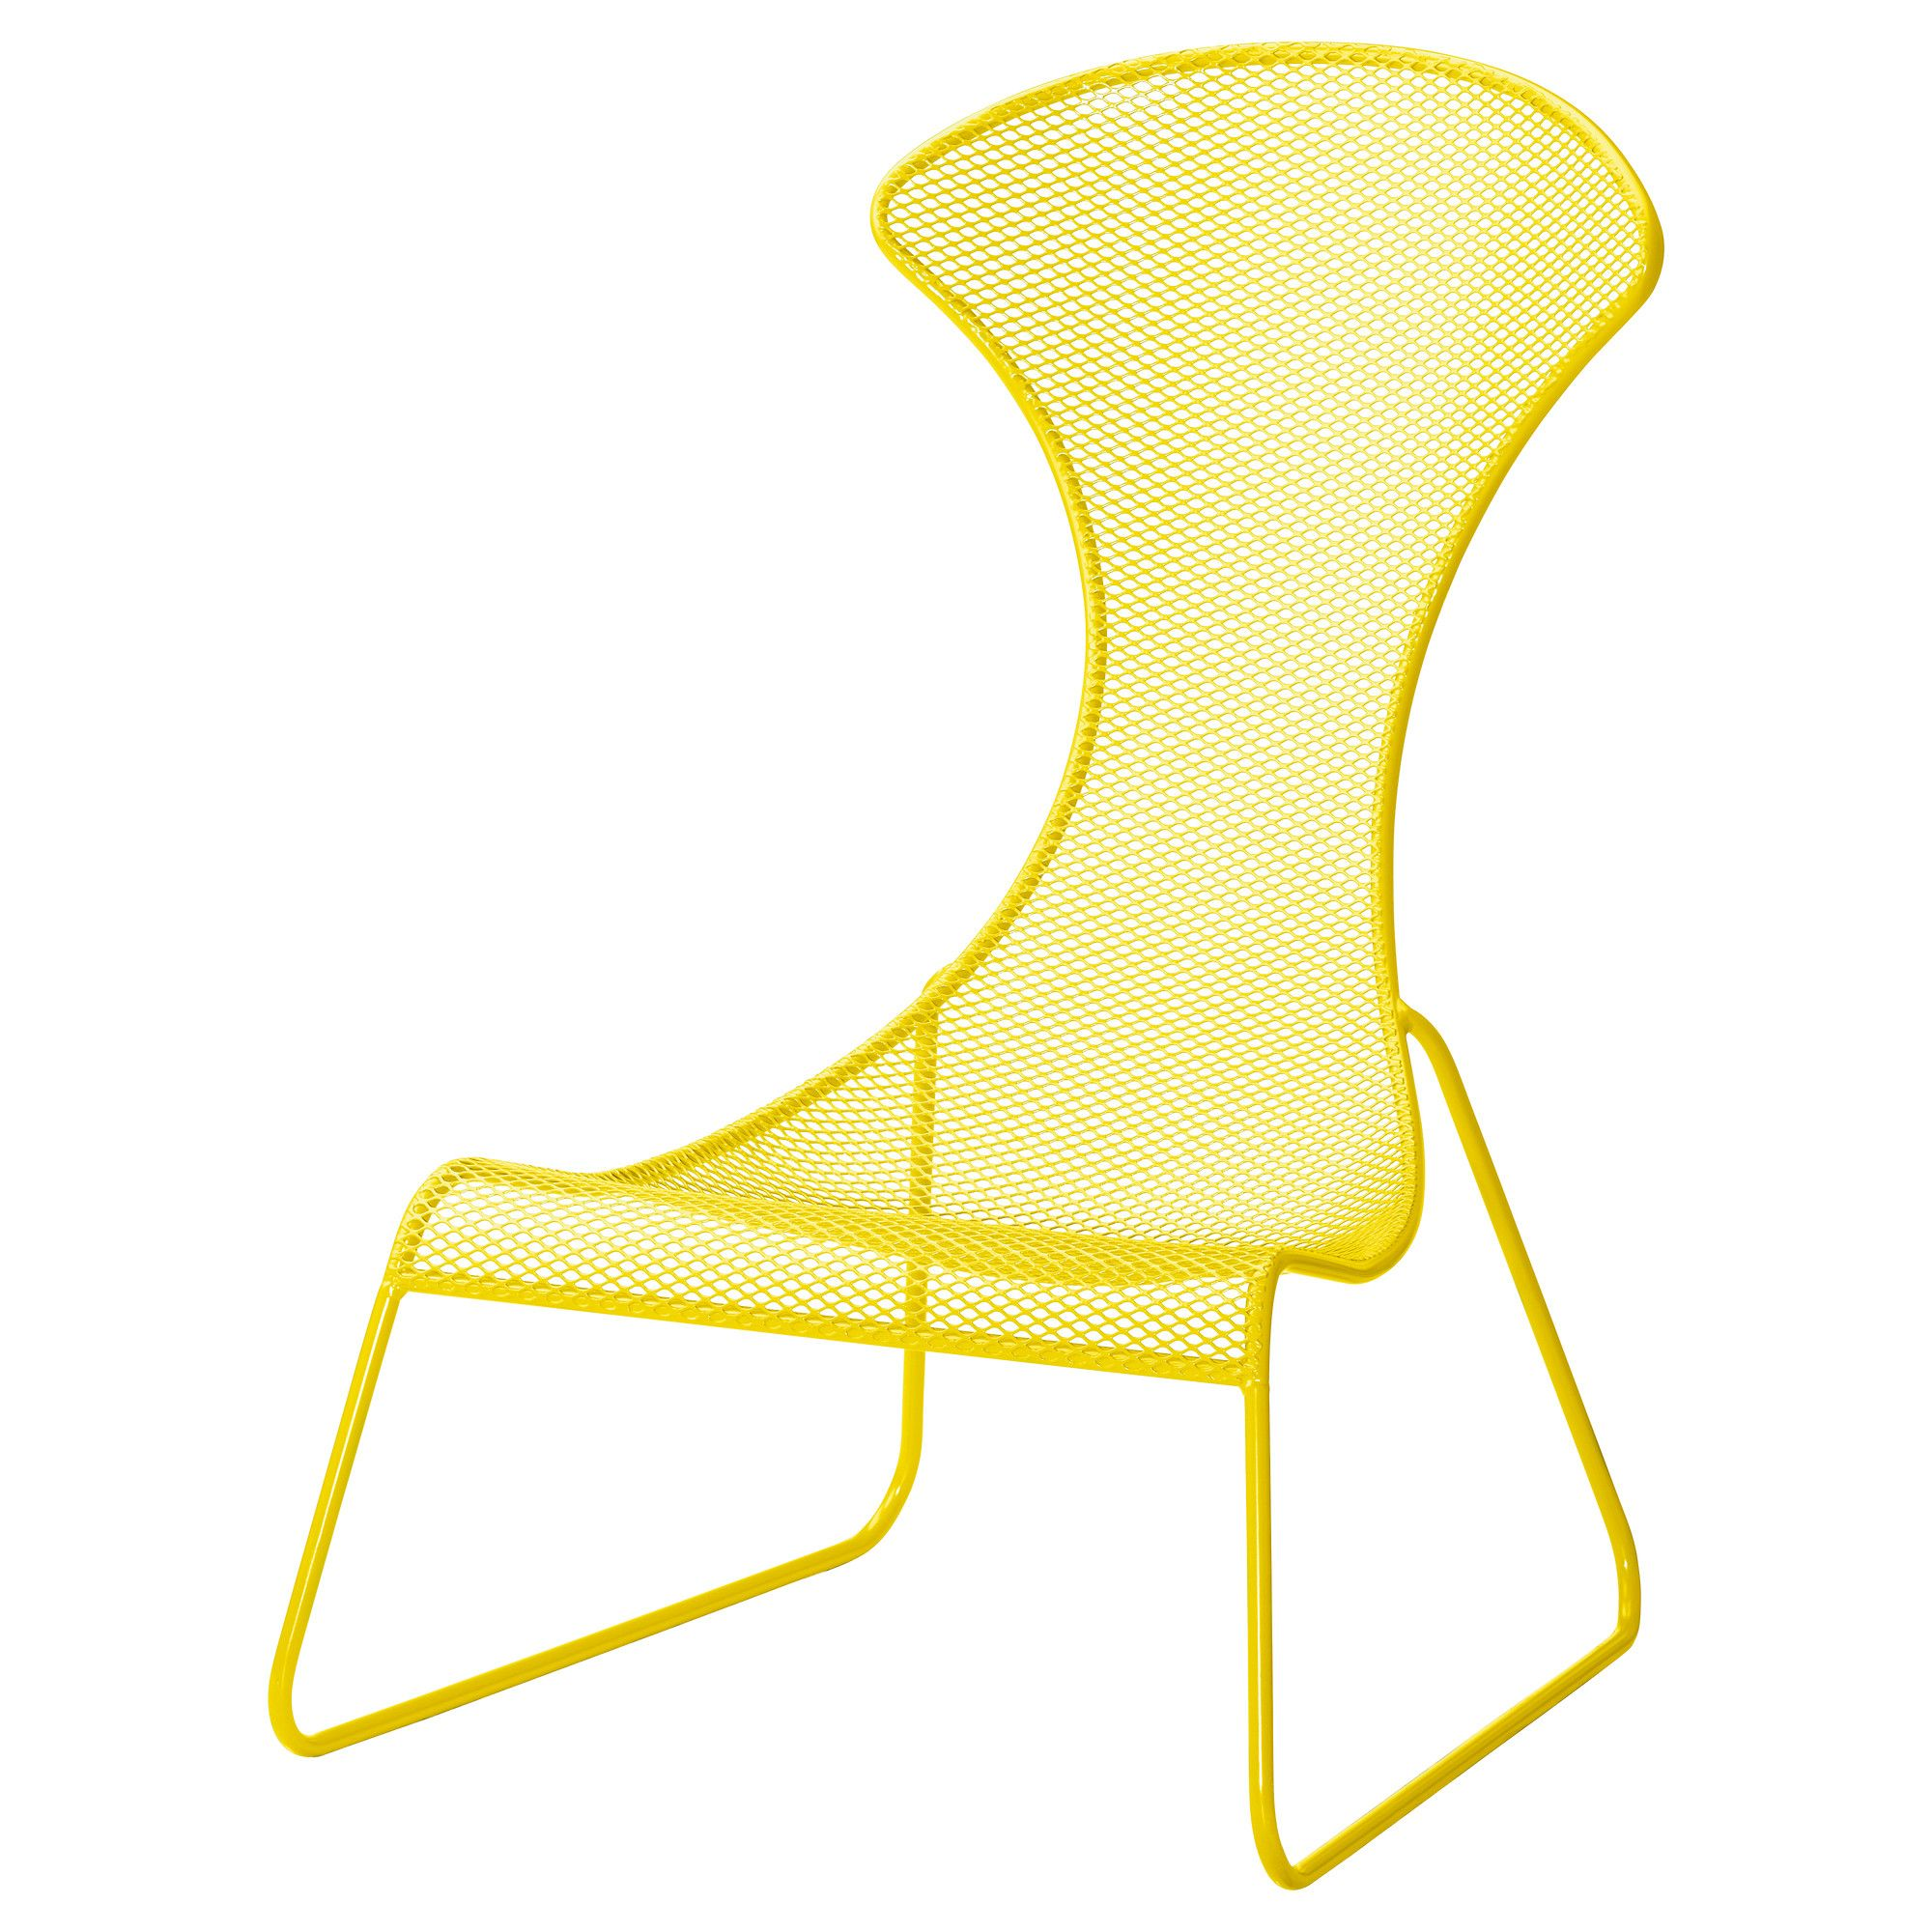 ikea ps 2012 easy chair yellow ikea could be fun to mix and